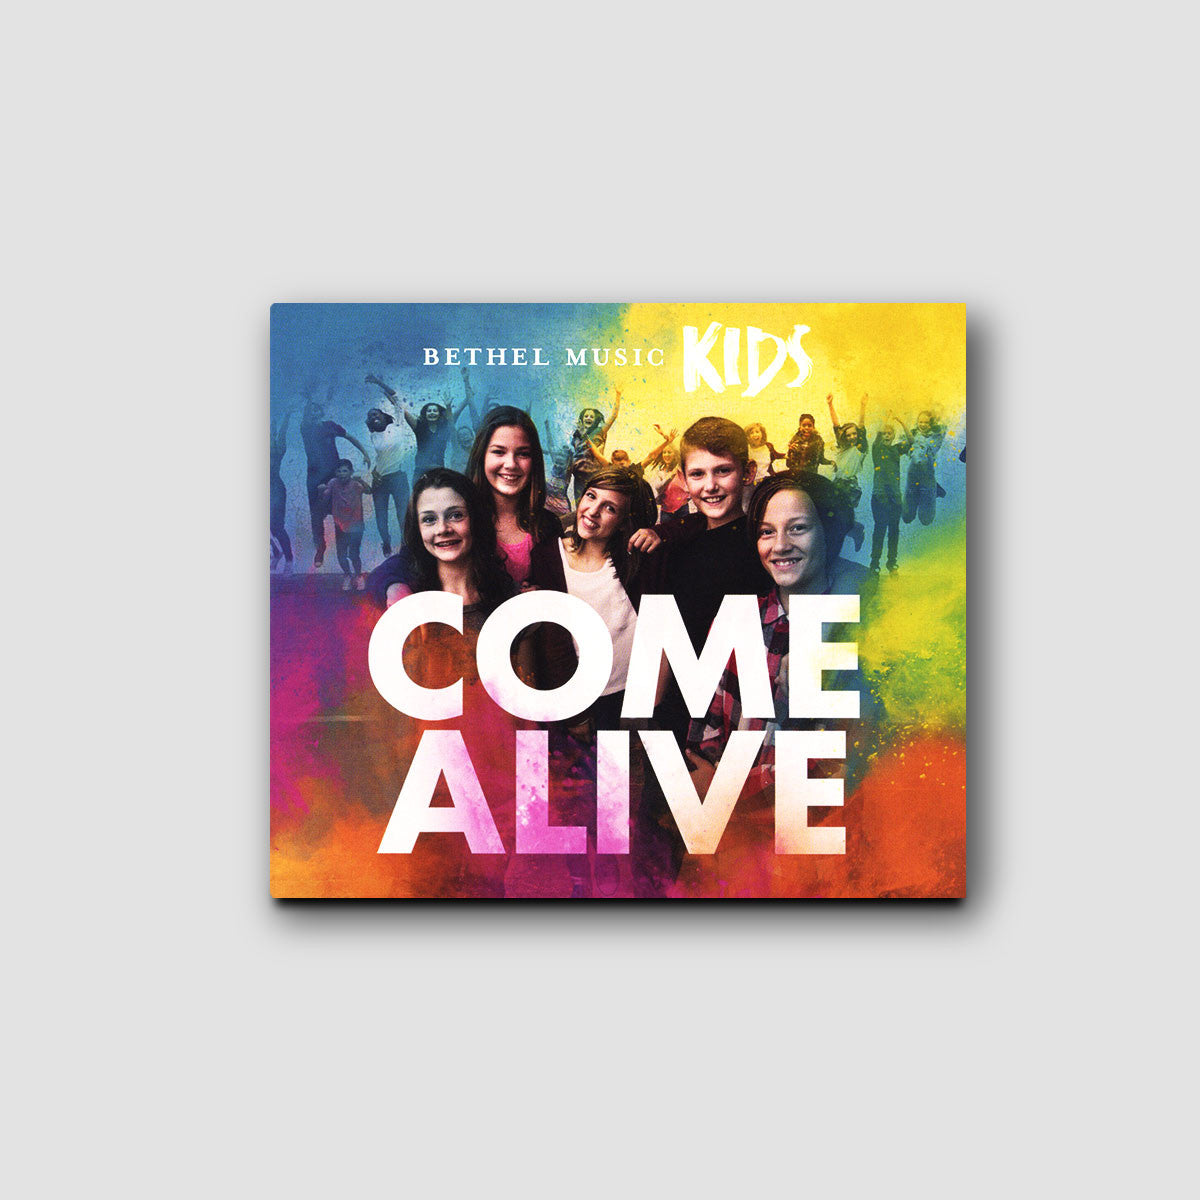 Come Alive - Bethel Music Kids